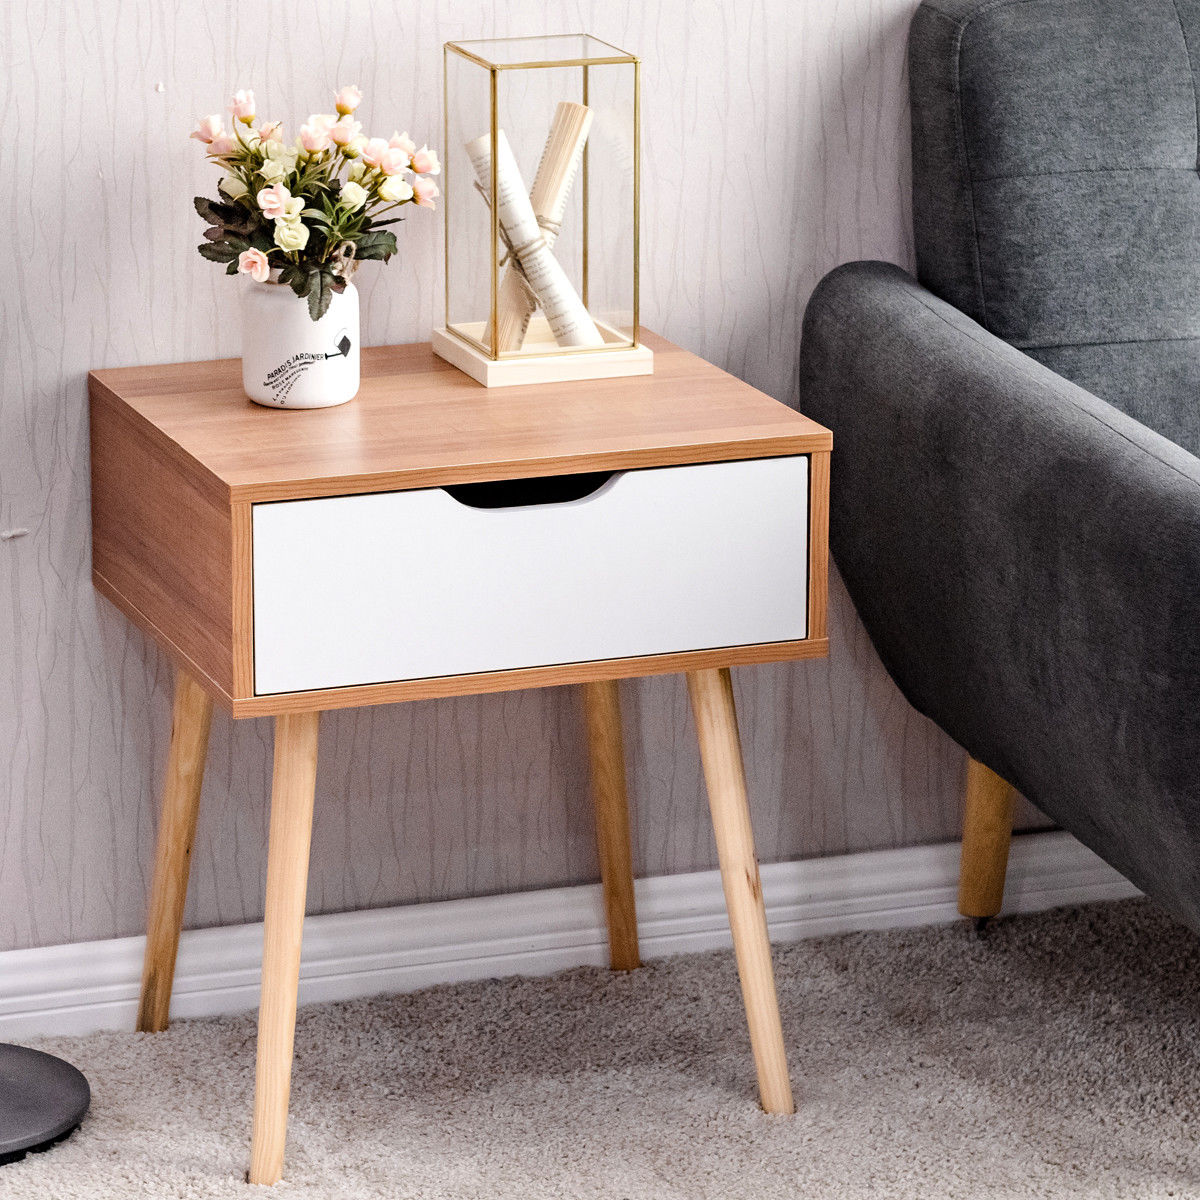 way nightstand end side table storage drawer living room tables with furni solid wood leg homesense pillows round nic ikea bedside drawers live edge slabs oak dining furniture